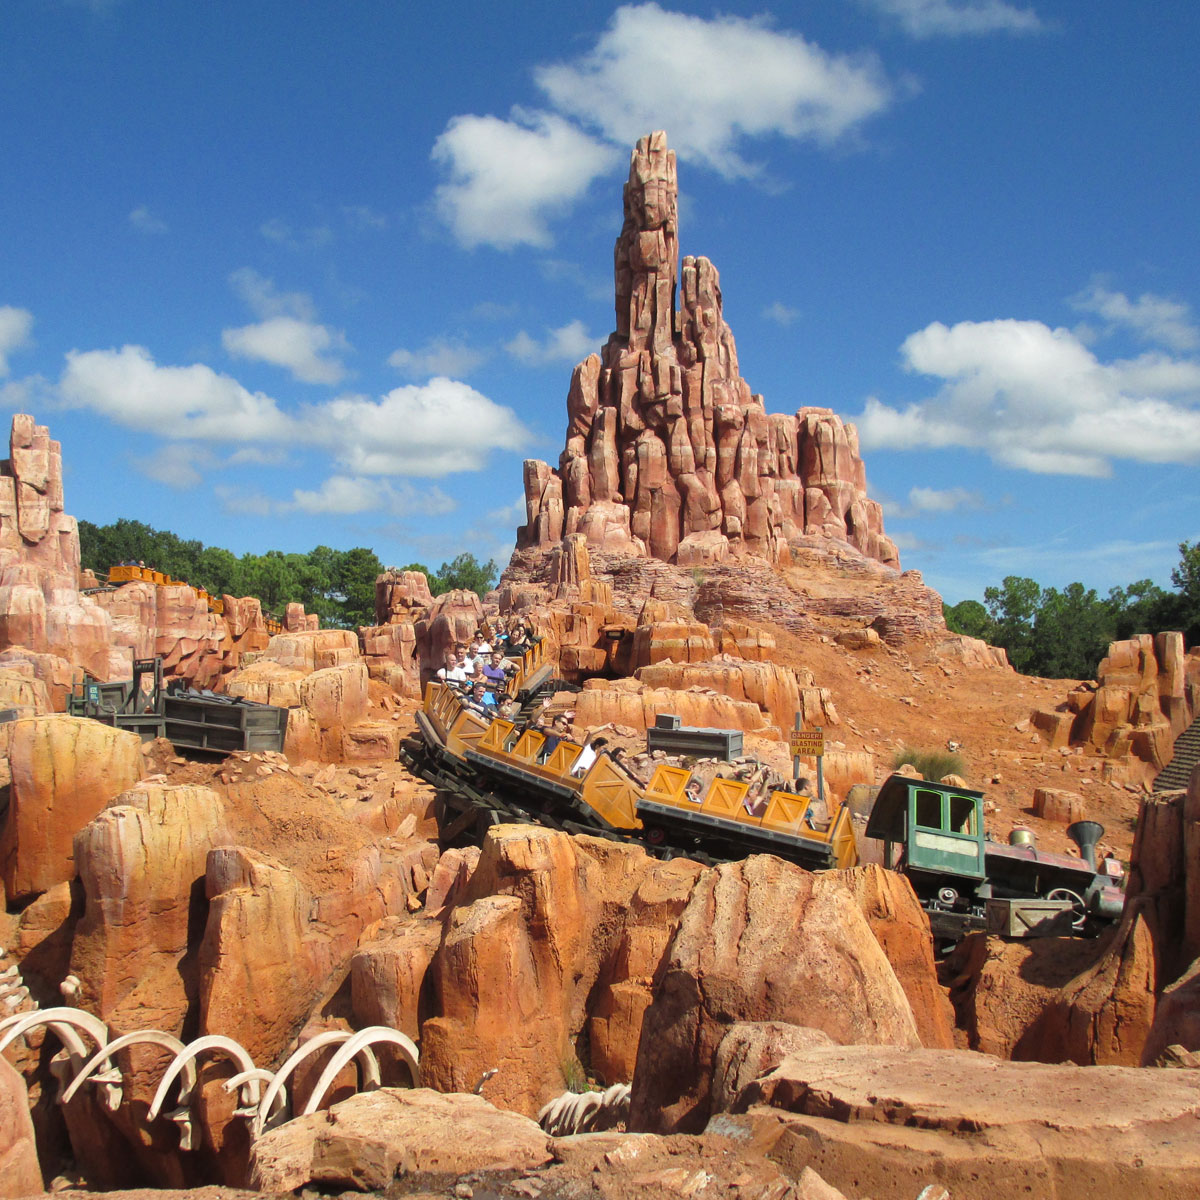 Big Thunder Mt Walt Disney World